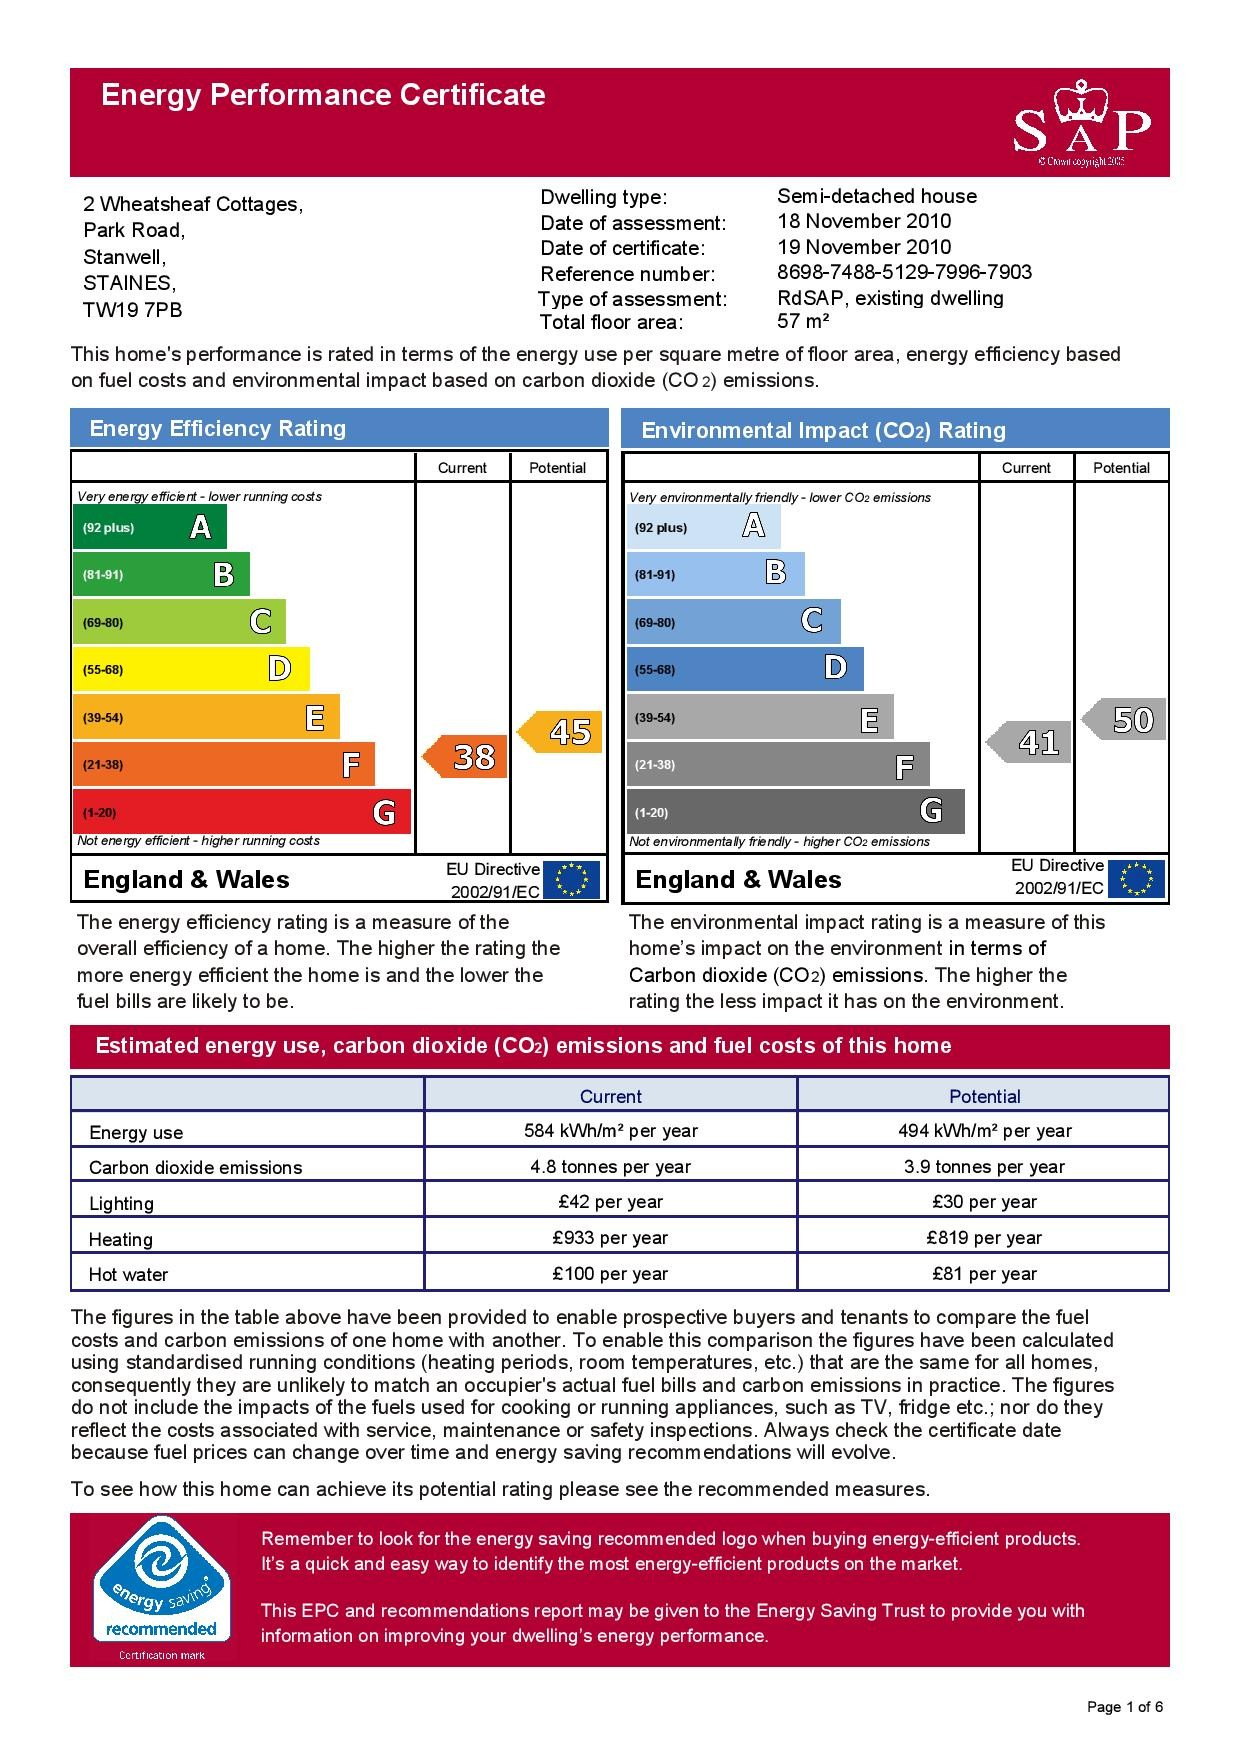 EPC Graph for 2 Wheatsheaf Cottages, Park Road, Stanwell Village, Middlesex TW19 7PB